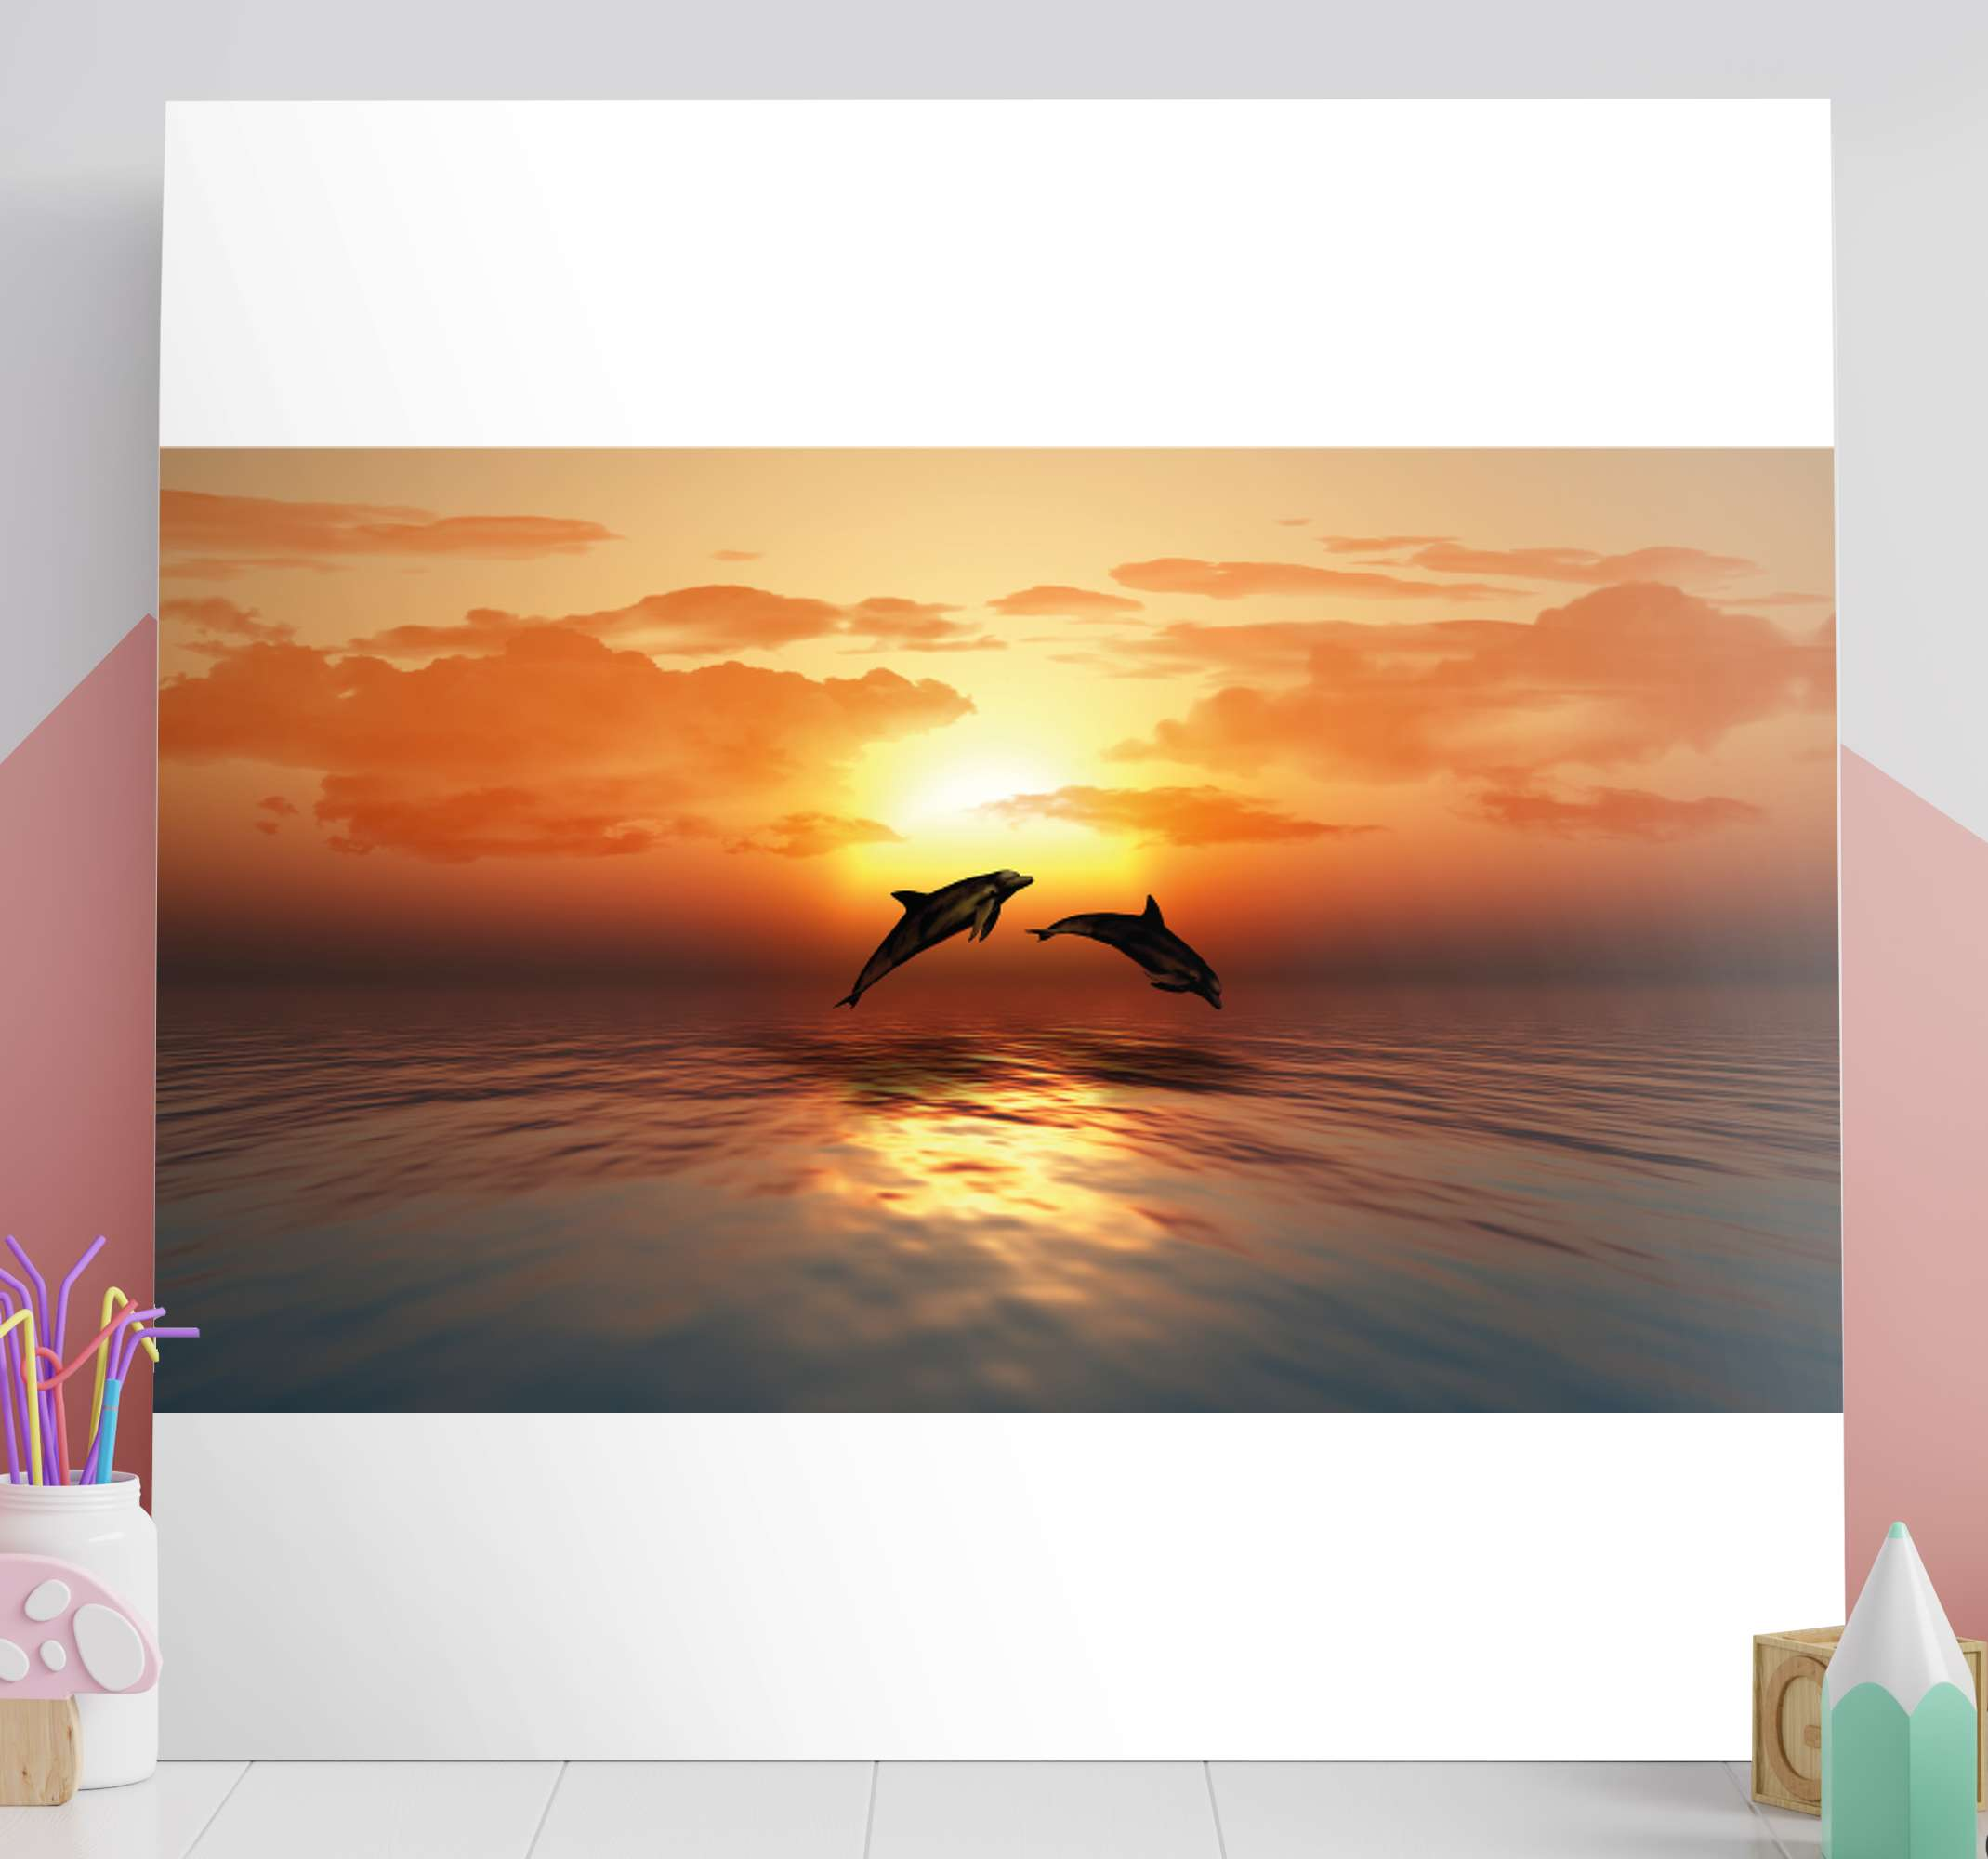 TenStickers. 3D Jumping Dolphins wall art prints. Canvas print with dolphins. The animals are jumbing over water surface during a sunfall. Easy to hang on a wall or place freely on a desk.